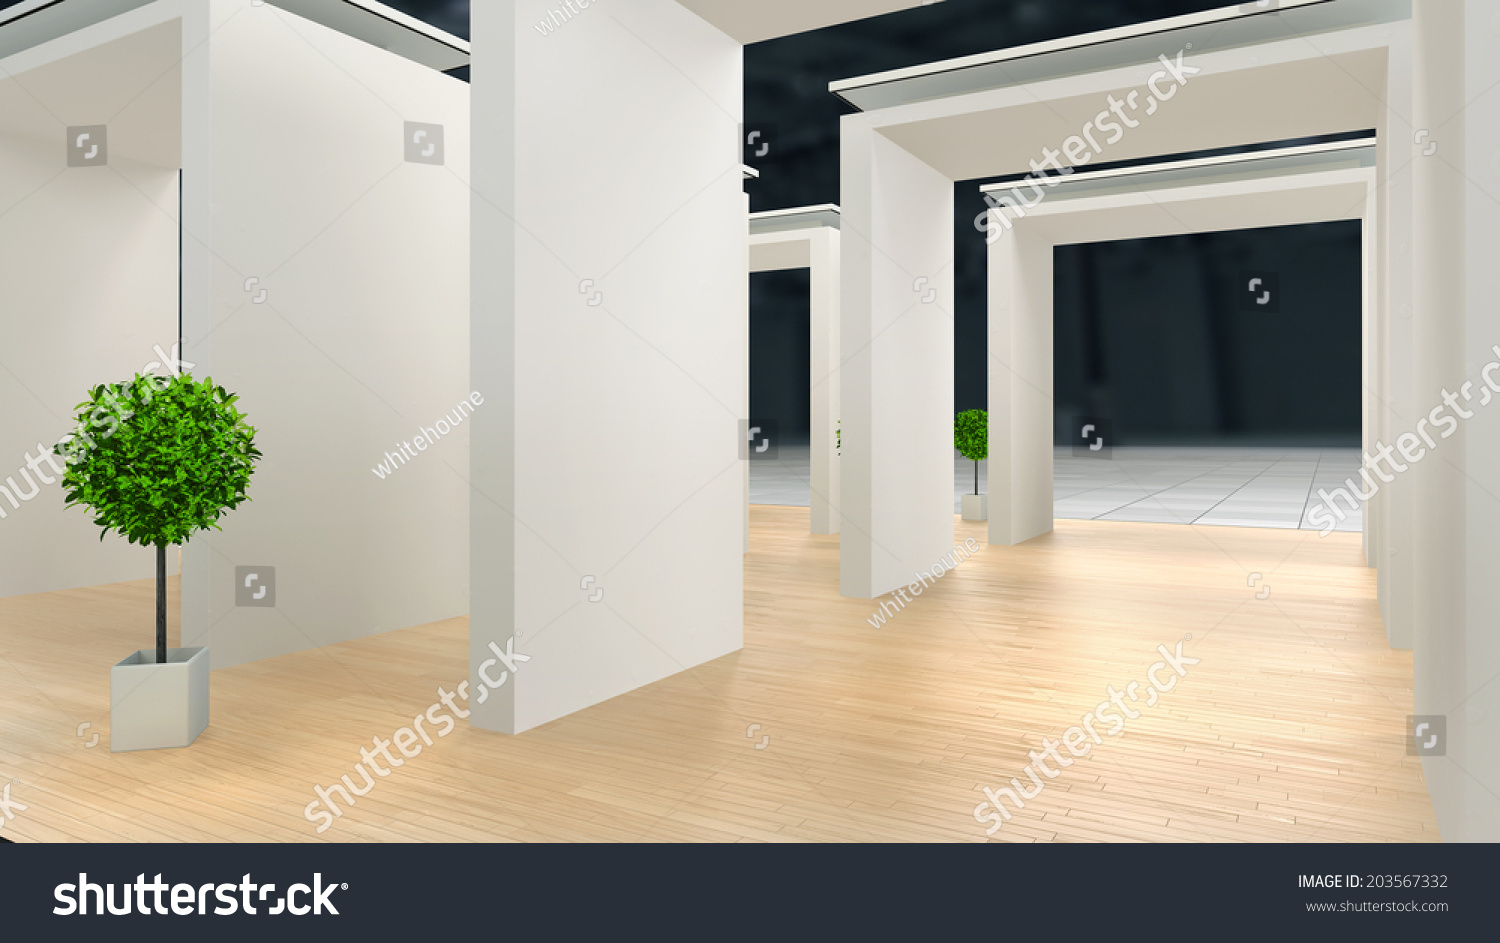 Exhibition Stand Lighting : Abstract exhibition stand laminate flooring blank stock illustration